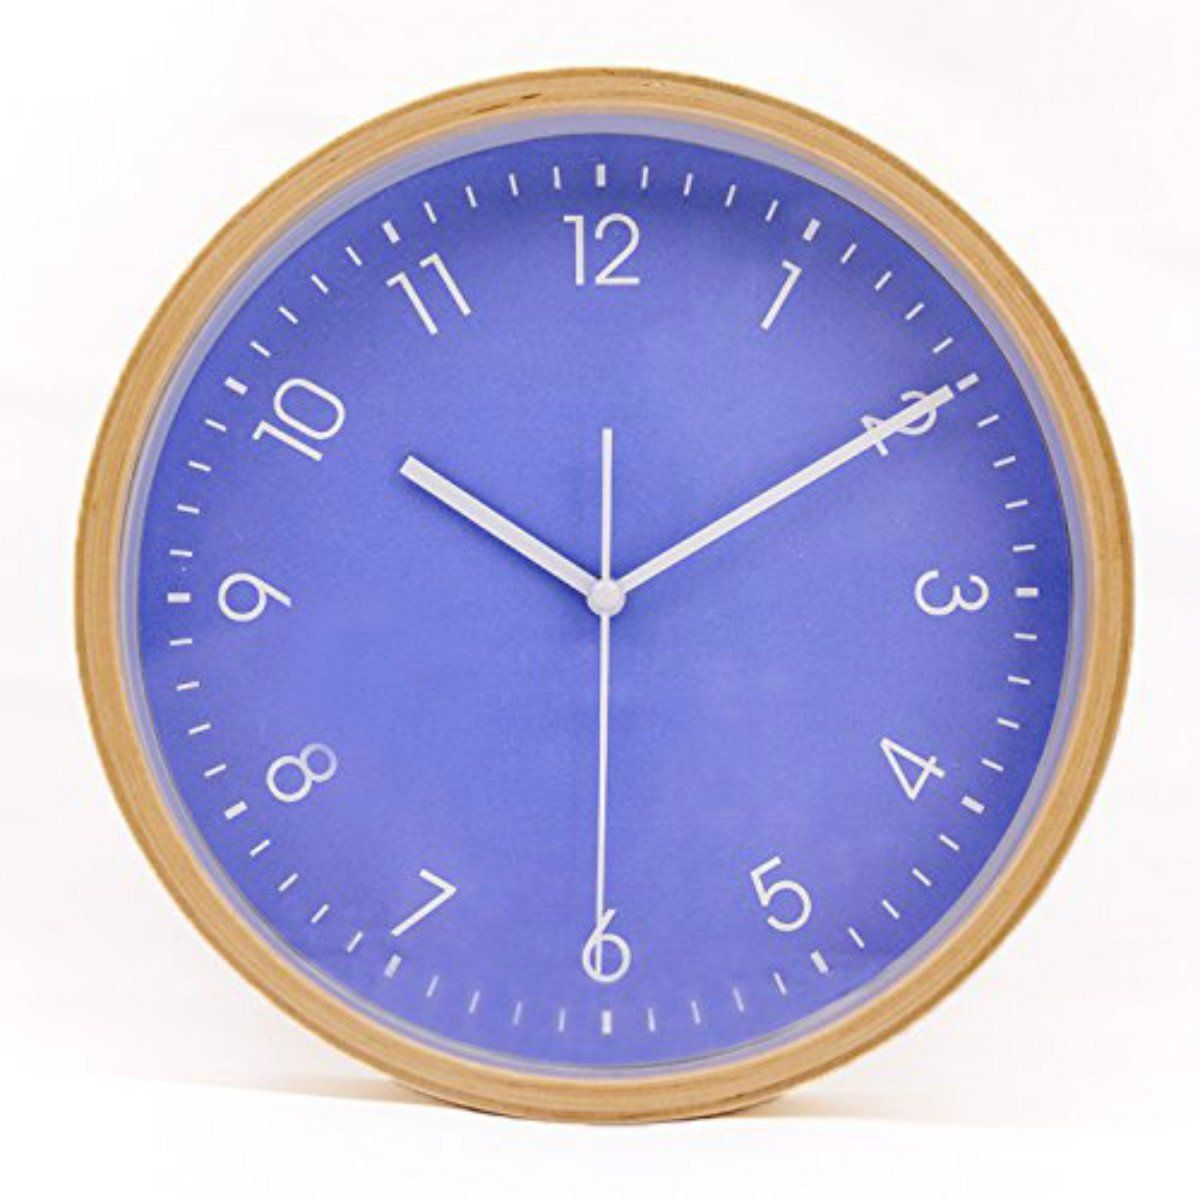 Hippih Silent Wall Clock Wood 8 Inches Non Ticking Digital Quiet Sweep Decorative Vintage Wooden Clocks Purple S Wood Wall Clock Clock Wall Clock